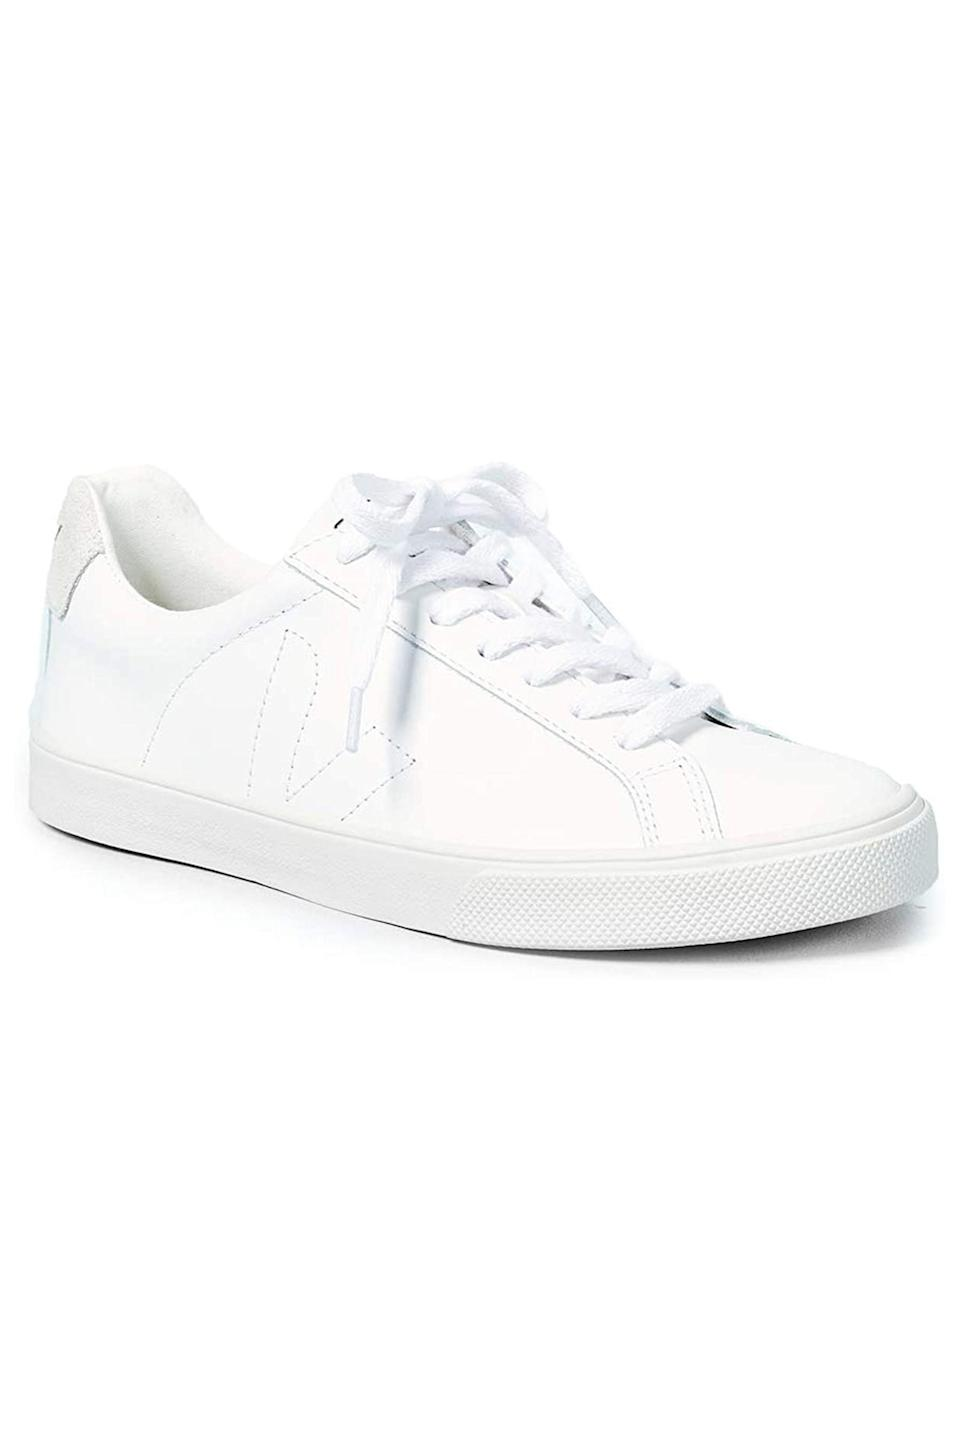 """<p><strong>Veja</strong></p><p>amazon.com</p><p><strong>$120.00</strong></p><p><a href=""""https://www.amazon.com/dp/B00I8PI4O8?tag=syn-yahoo-20&ascsubtag=%5Bartid%7C10051.g.13053688%5Bsrc%7Cyahoo-us"""" rel=""""nofollow noopener"""" target=""""_blank"""" data-ylk=""""slk:Shop Now"""" class=""""link rapid-noclick-resp"""">Shop Now</a></p><p>White leather sneakers defined the last decade in fashion and aren't going away anytime soon. Gift her a pair from Veja, the sustainable brand she's been trying to track down in her size these last few months.</p>"""